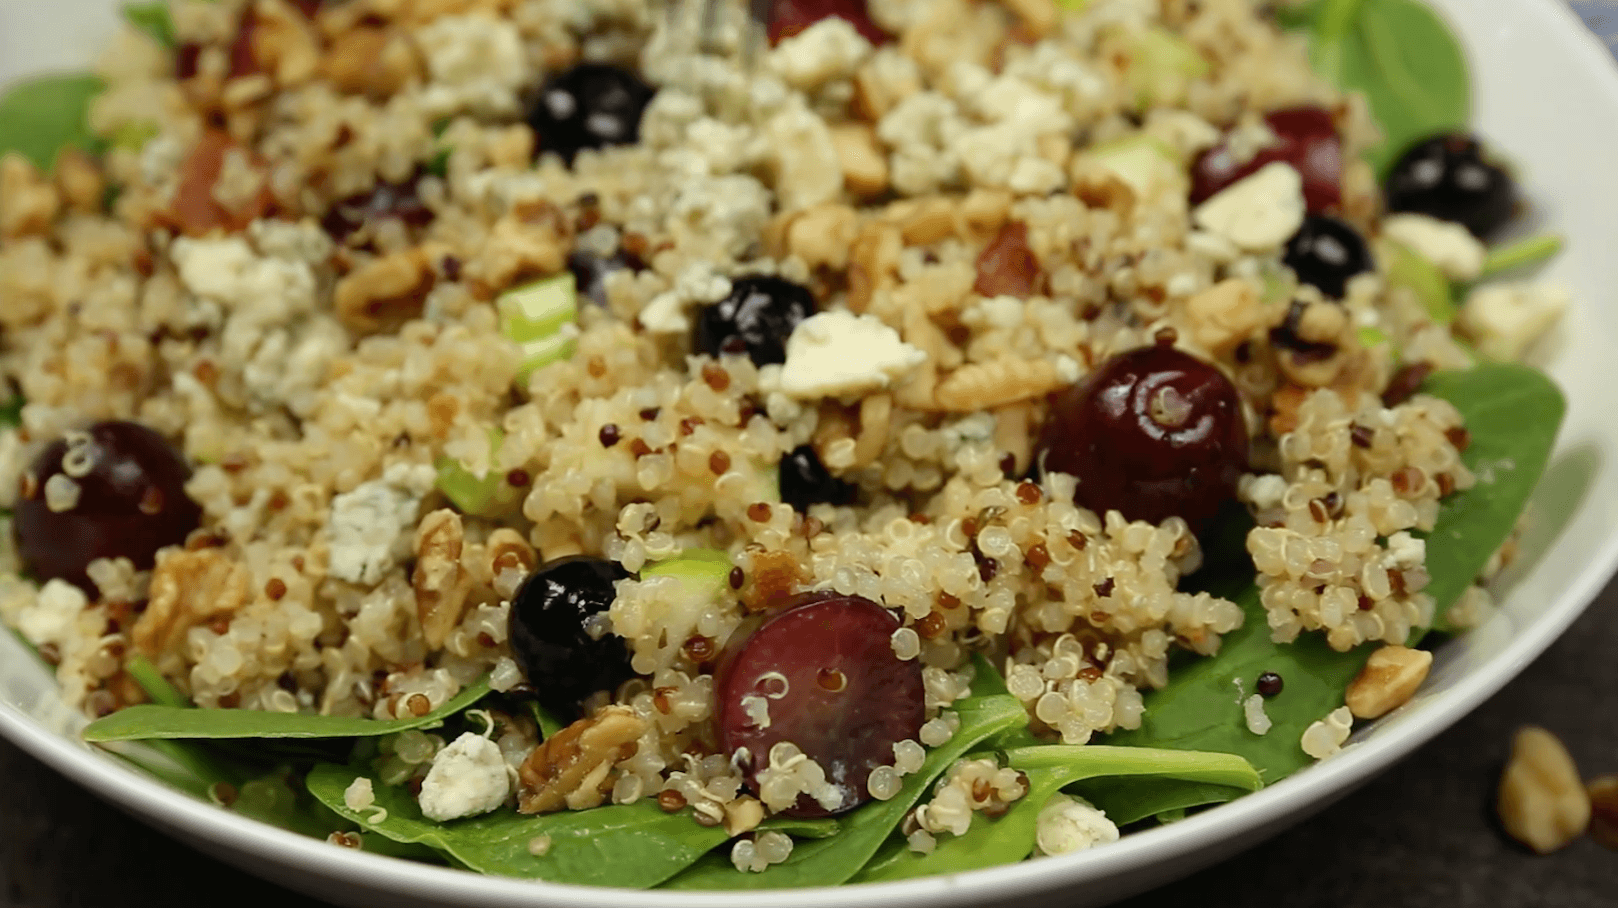 Ancient Grain Salad with Blueberries